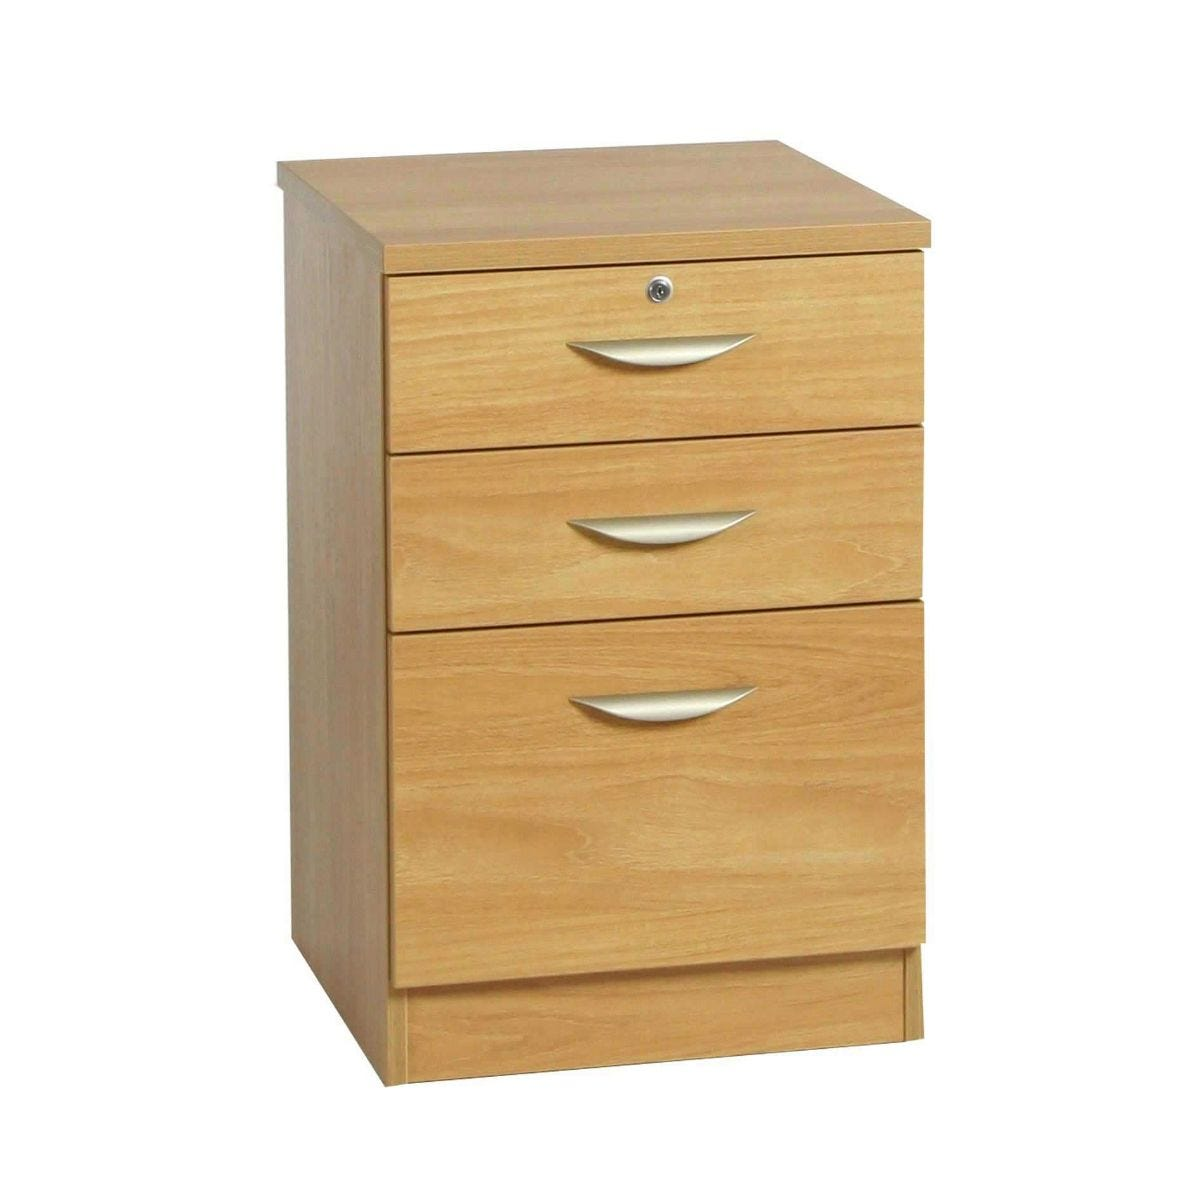 R White Combination Cabinet 3 Drawer B-3CU H728xW479xD540mm, Beech